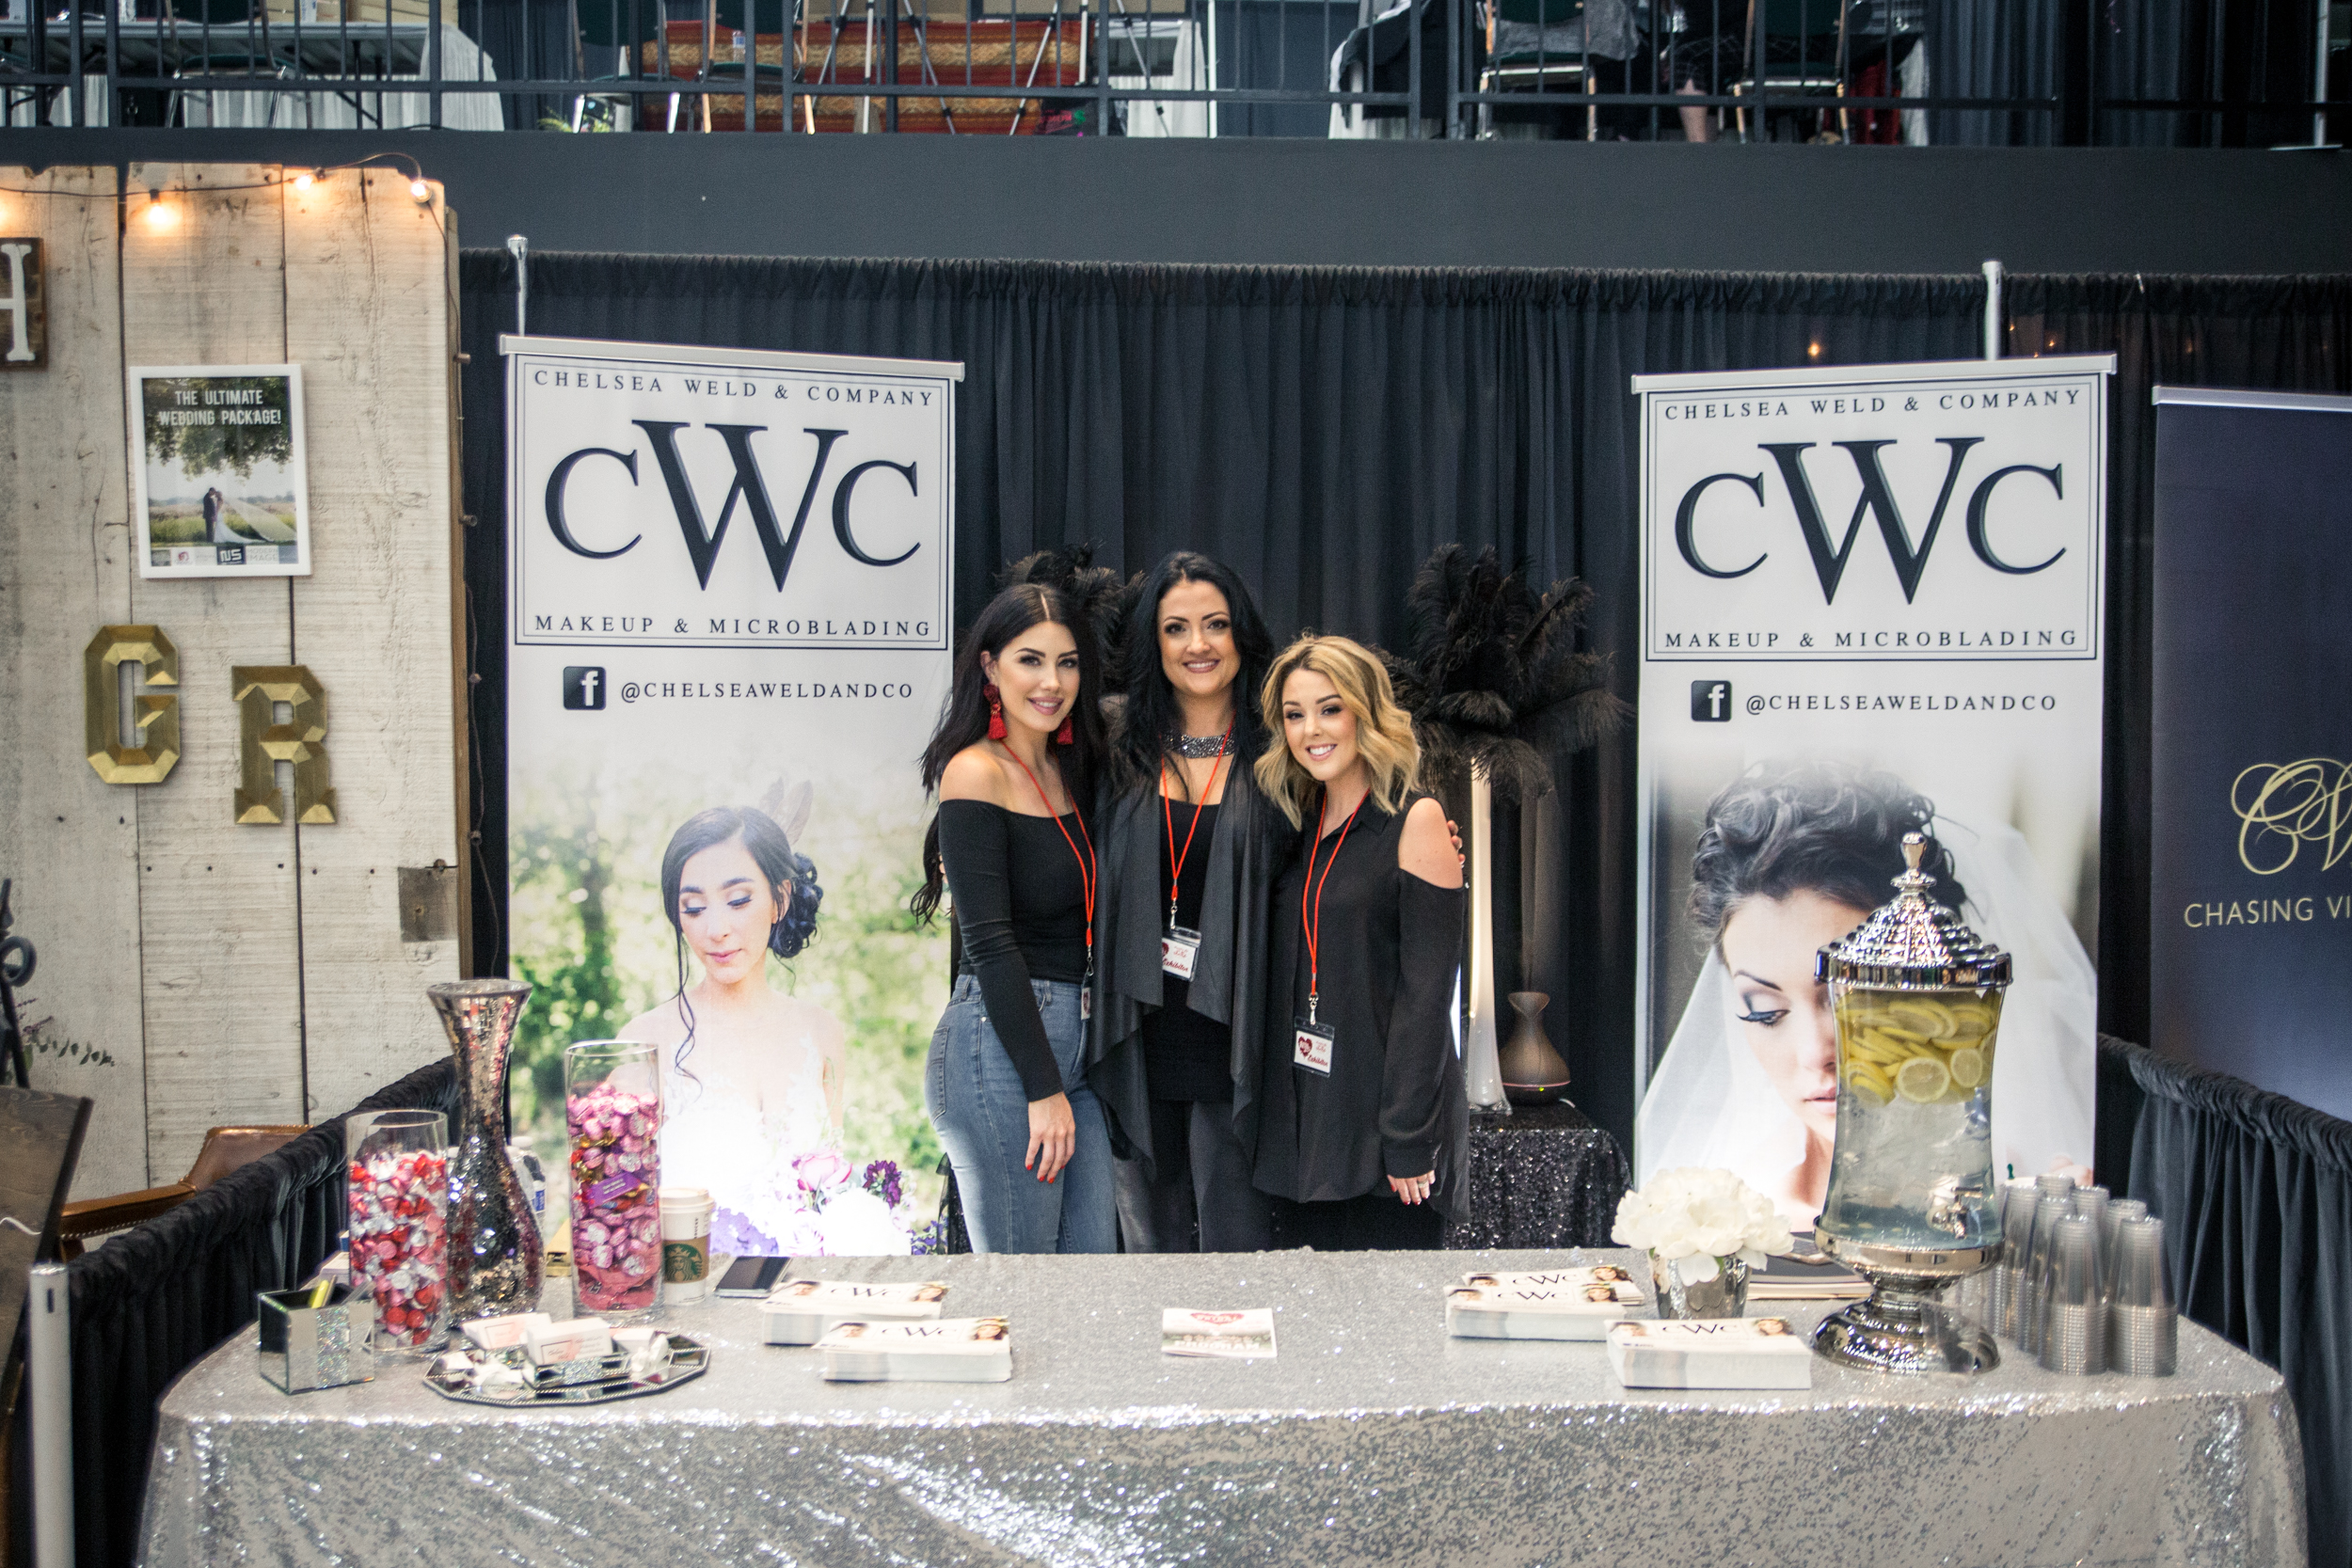 Chelsea Weld and Co Redding Bridal Show Wedding Expo